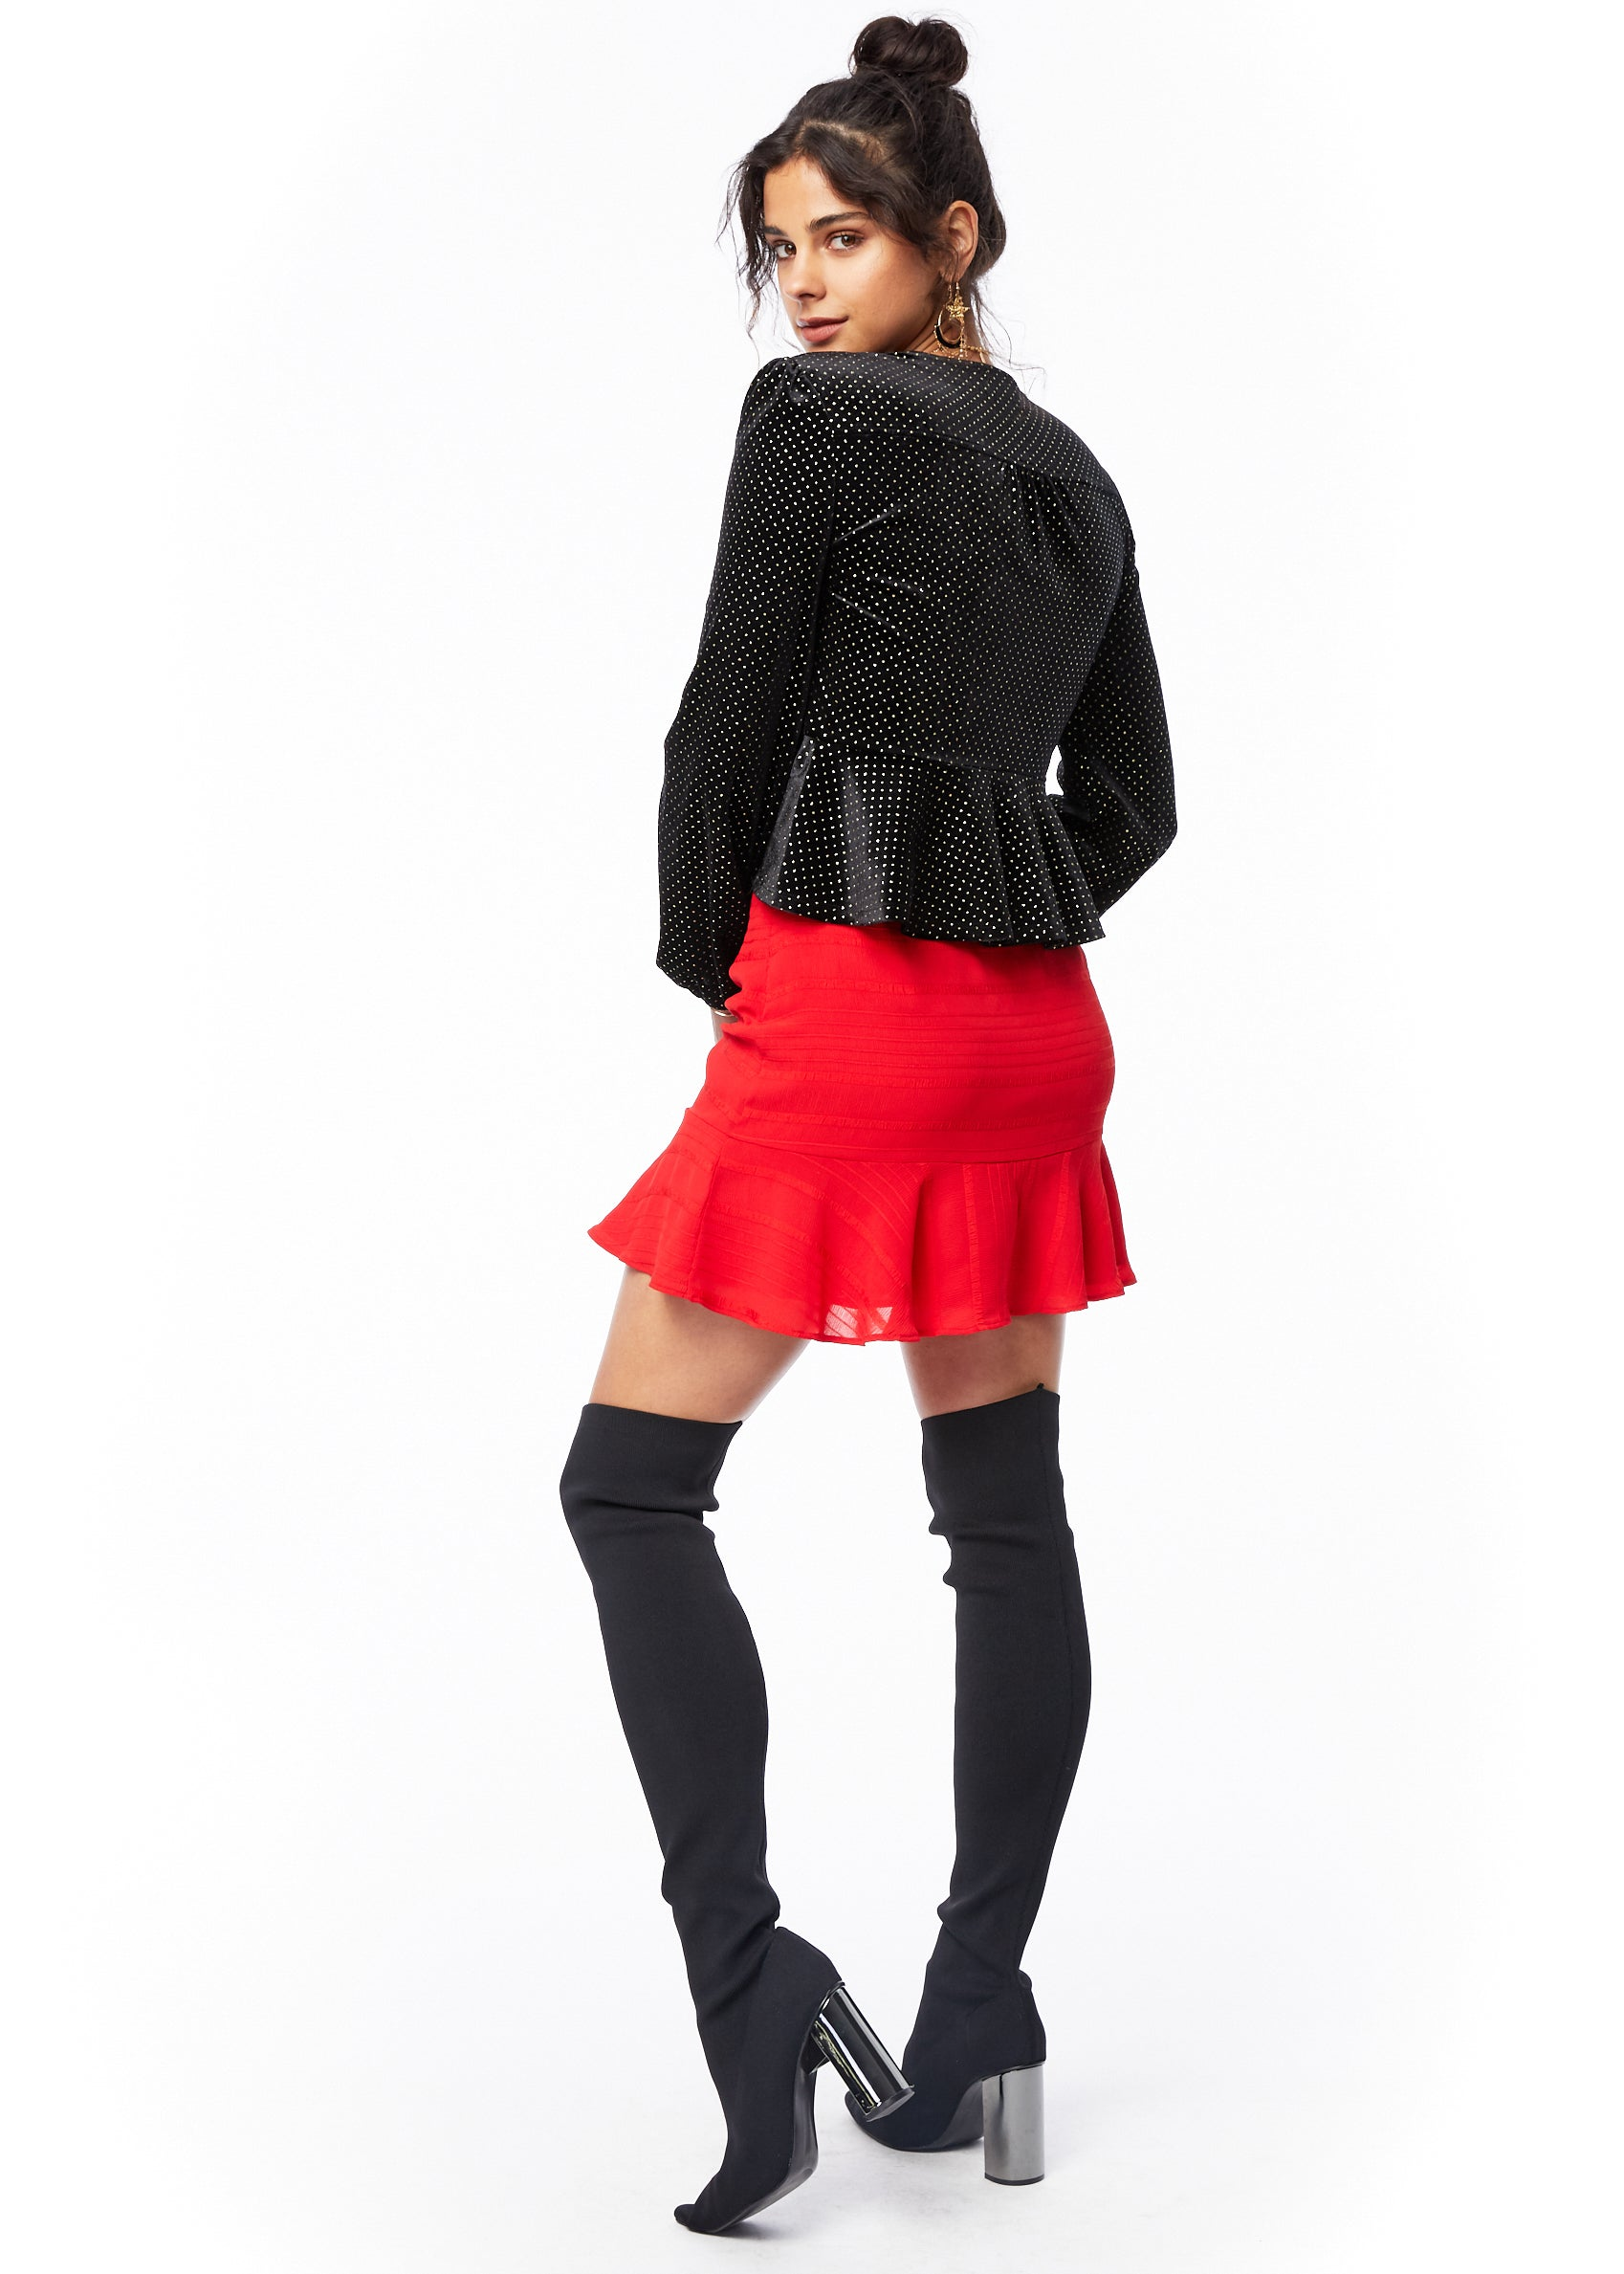 Scorpion Ruffle Skirt